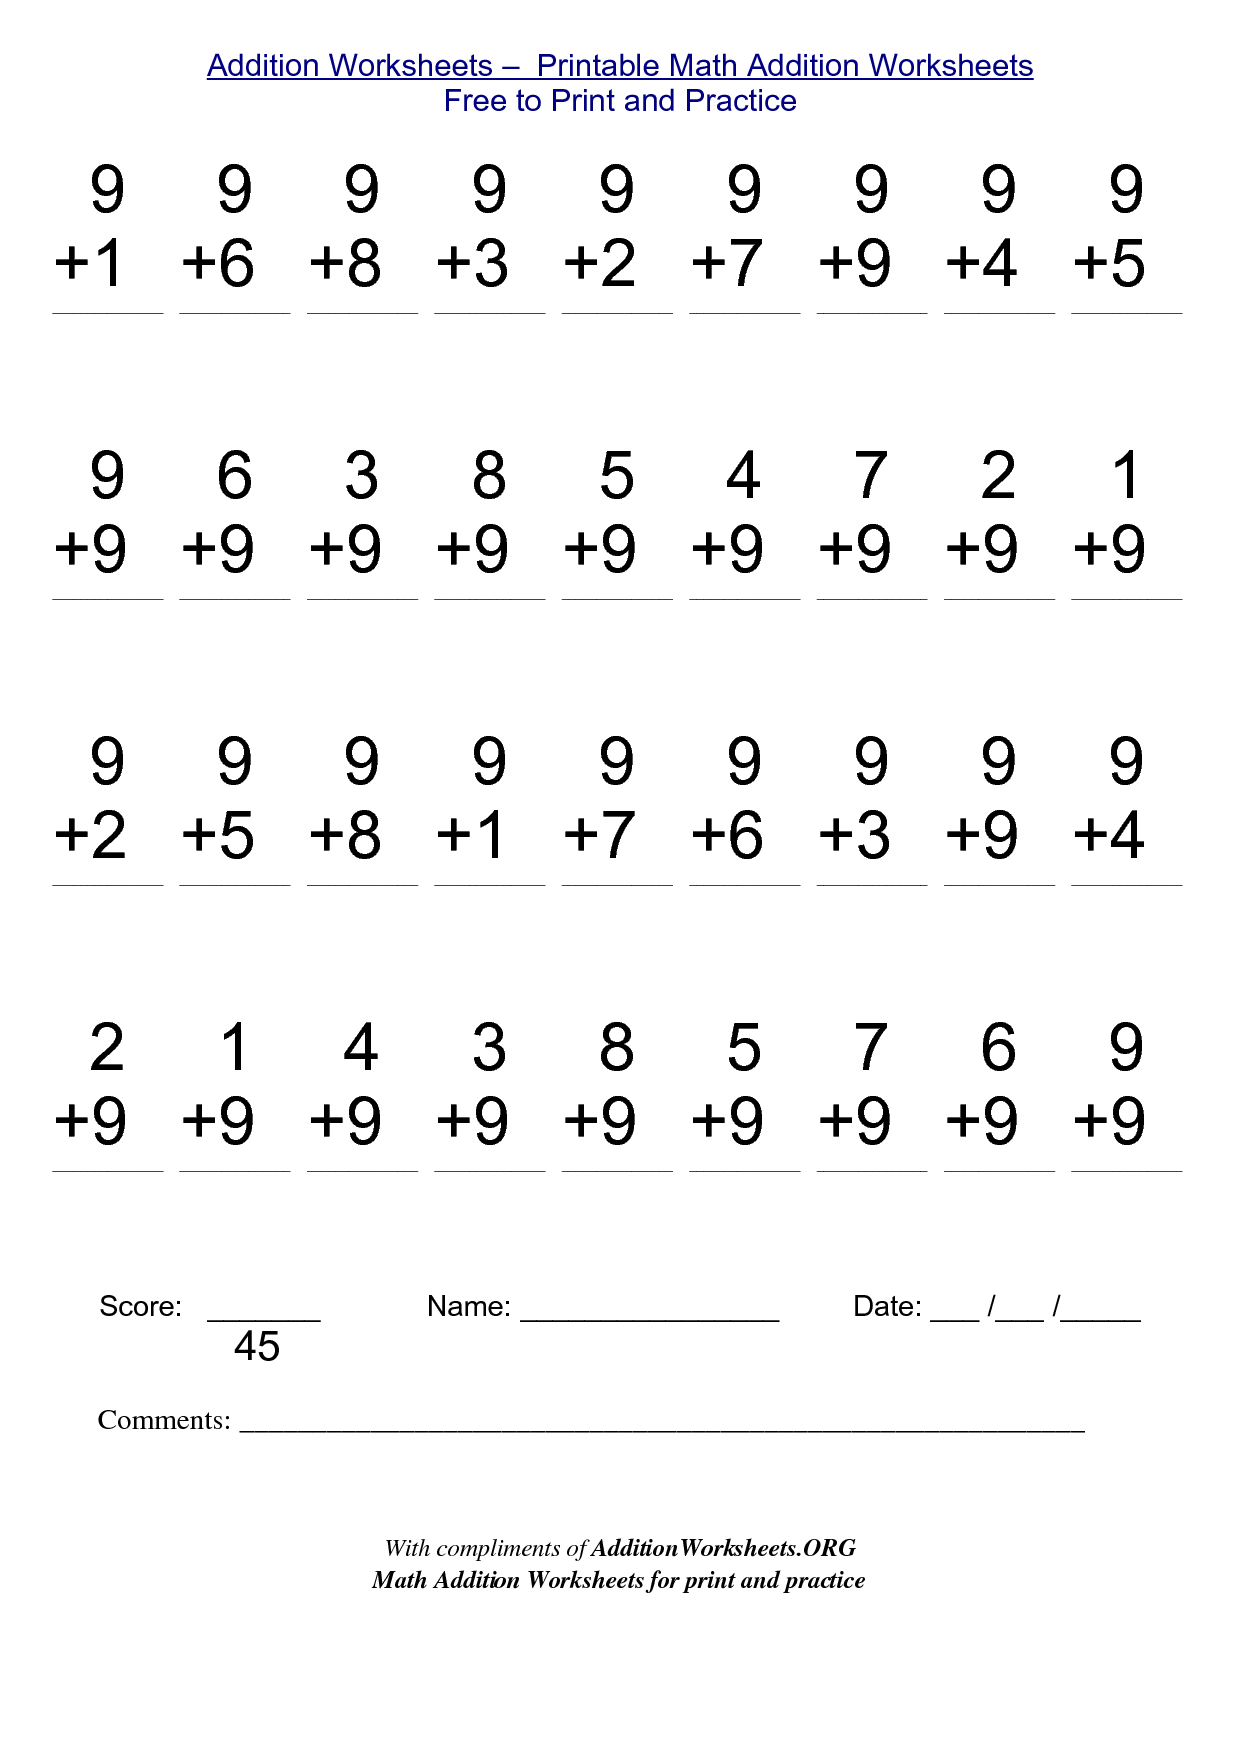 Free Worksheet 100 Addition Facts 120 For Educators – Math Tutoring Worksheets